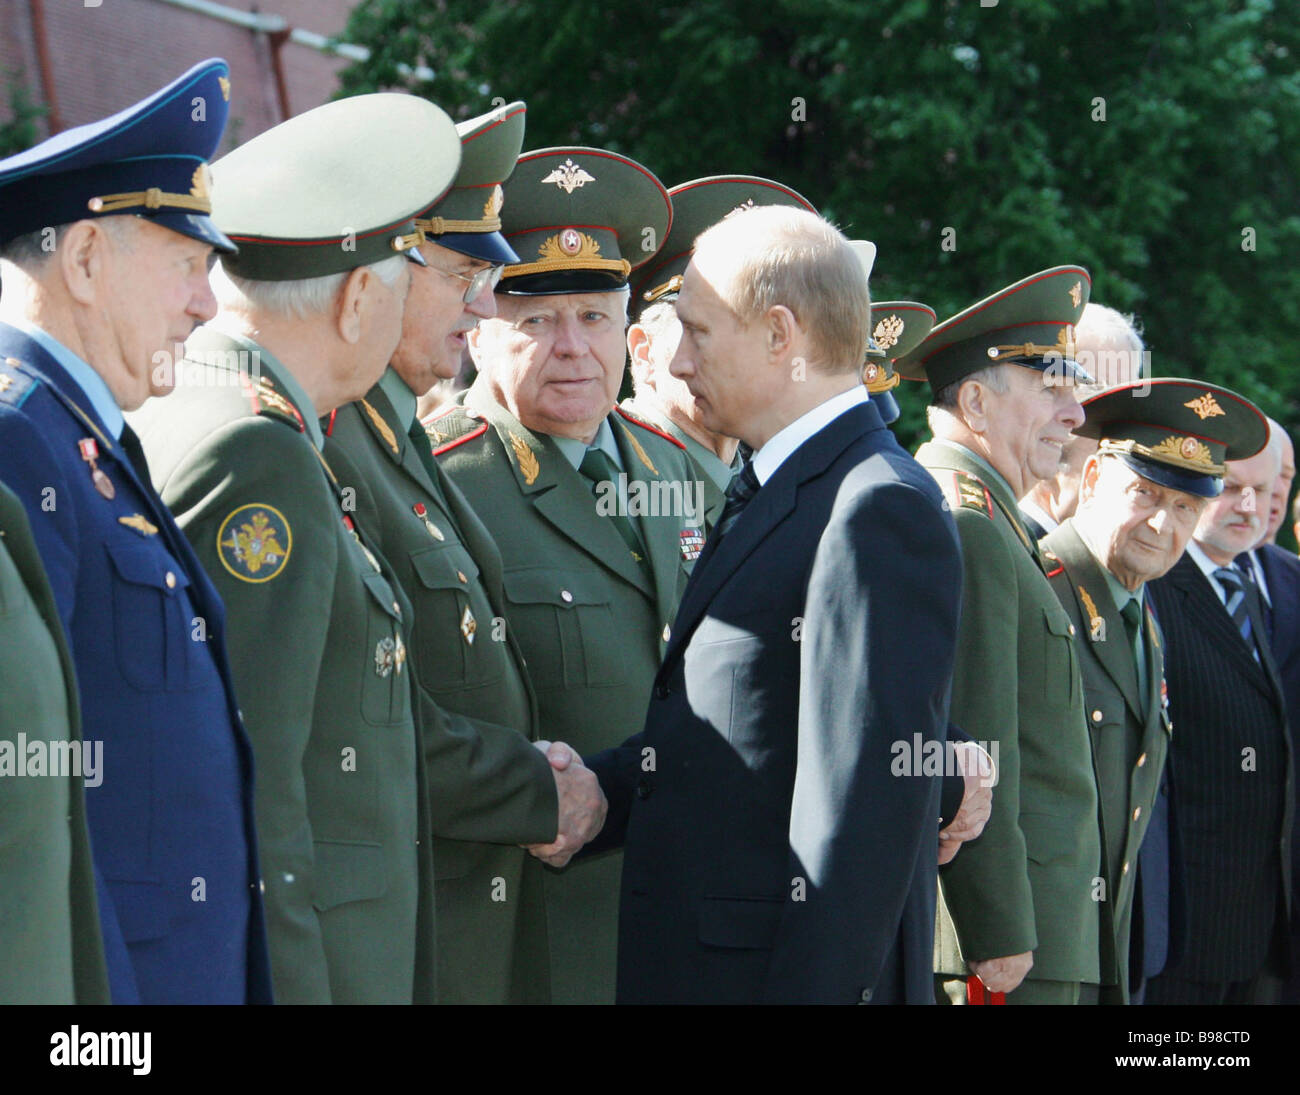 Russian President Vladimir Putin right met with veterans during the wreath laying ceremony at the Tomb of the Unknown - Stock Image